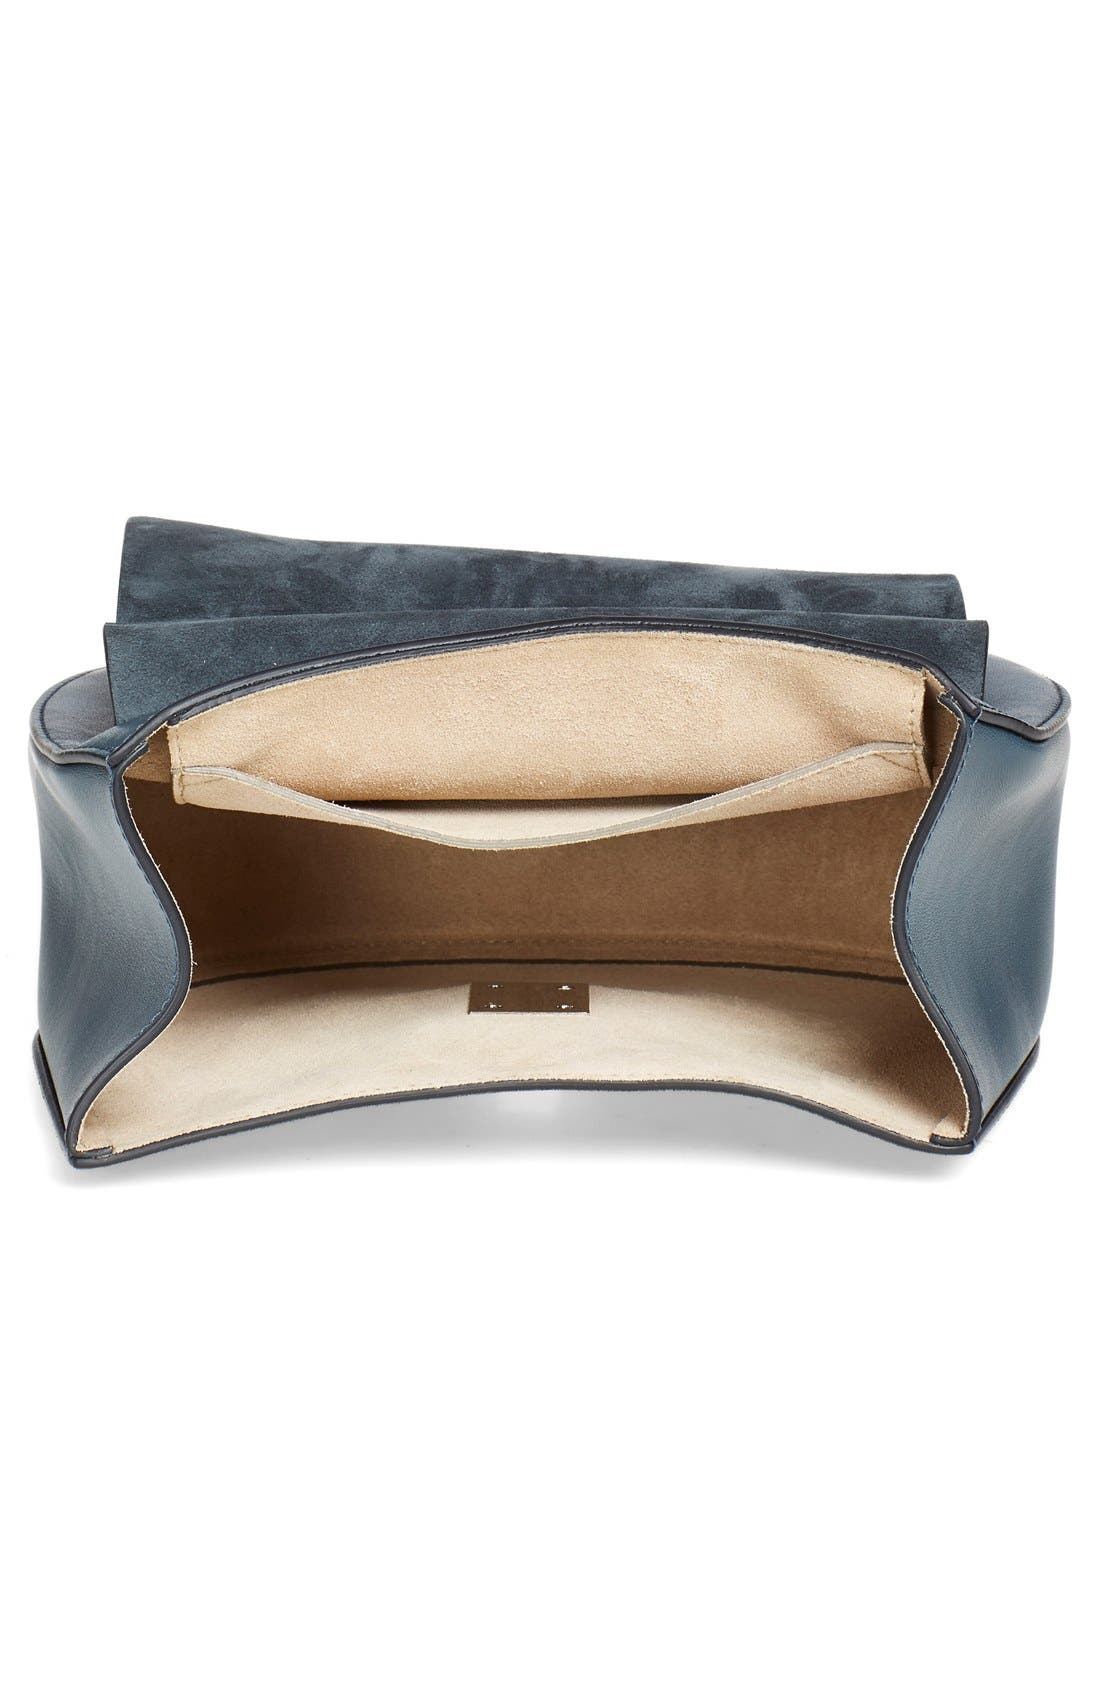 Alternate Image 3  - Chloé Small Drew Leather & Suede Shoulder Bag